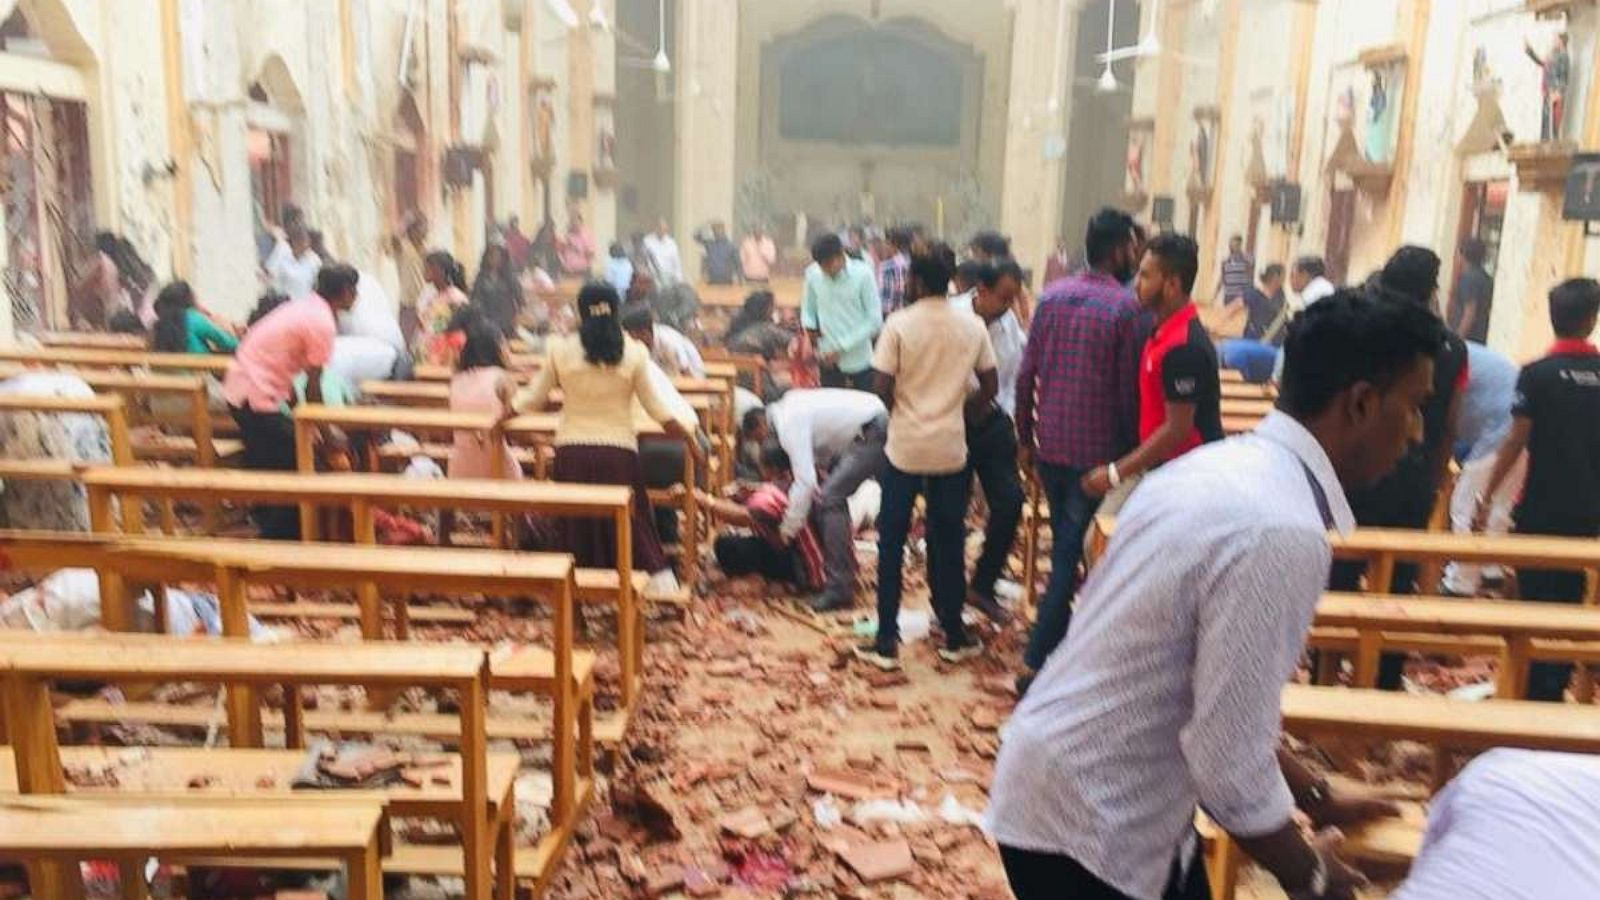 abcnews.go.com - Mark Osborne - 40 dead as explosions rock churches, hotels in Sri Lanka: Report